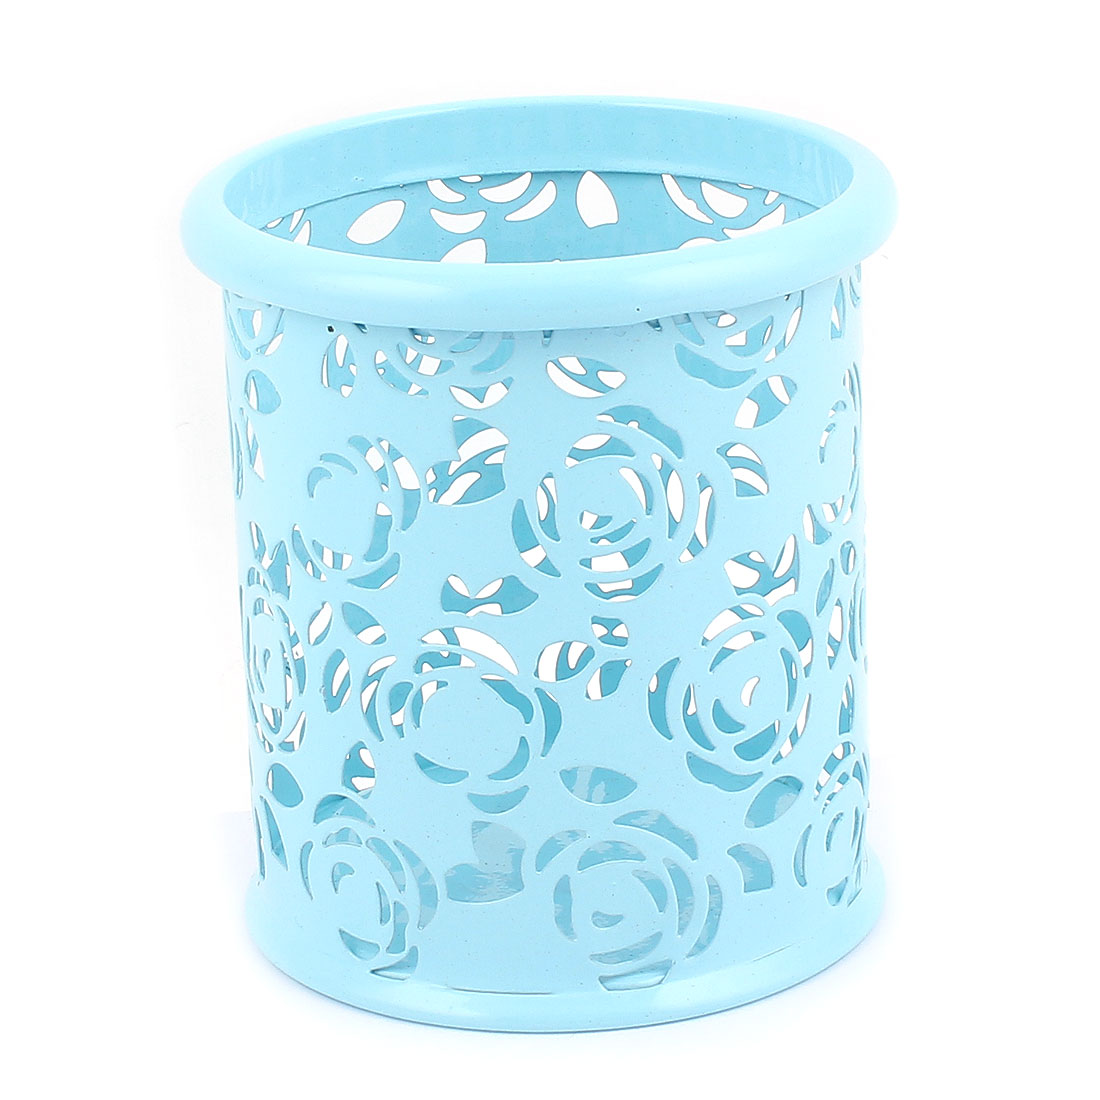 Office School Metal Cylinder Flower Carved Mesh Pen Pencil Holder Container Organizer Blue